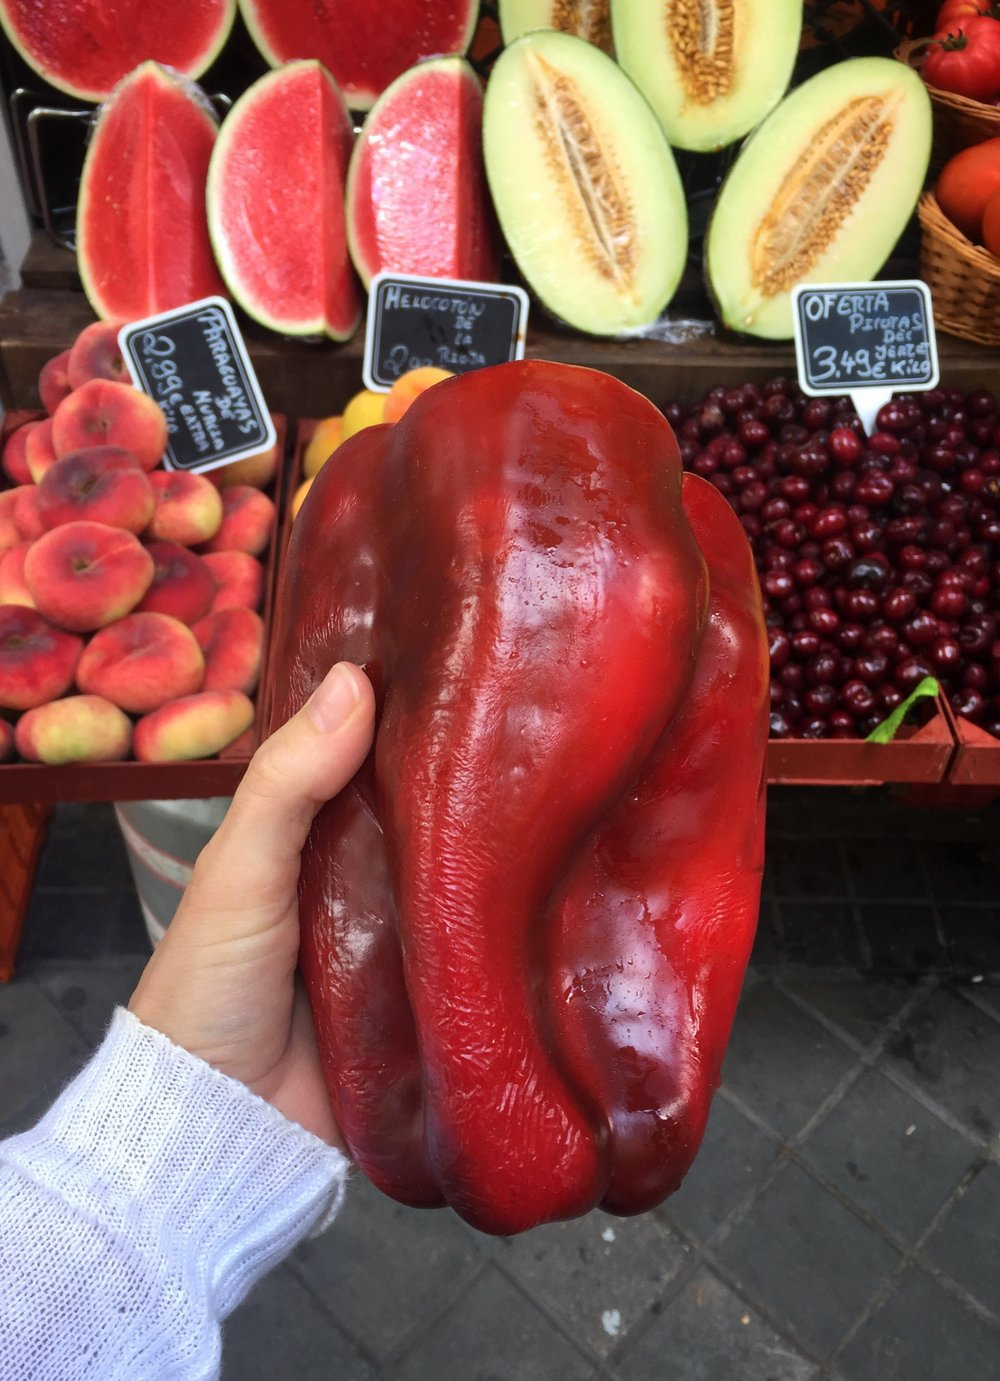 the biggest pepper I've seen in my life